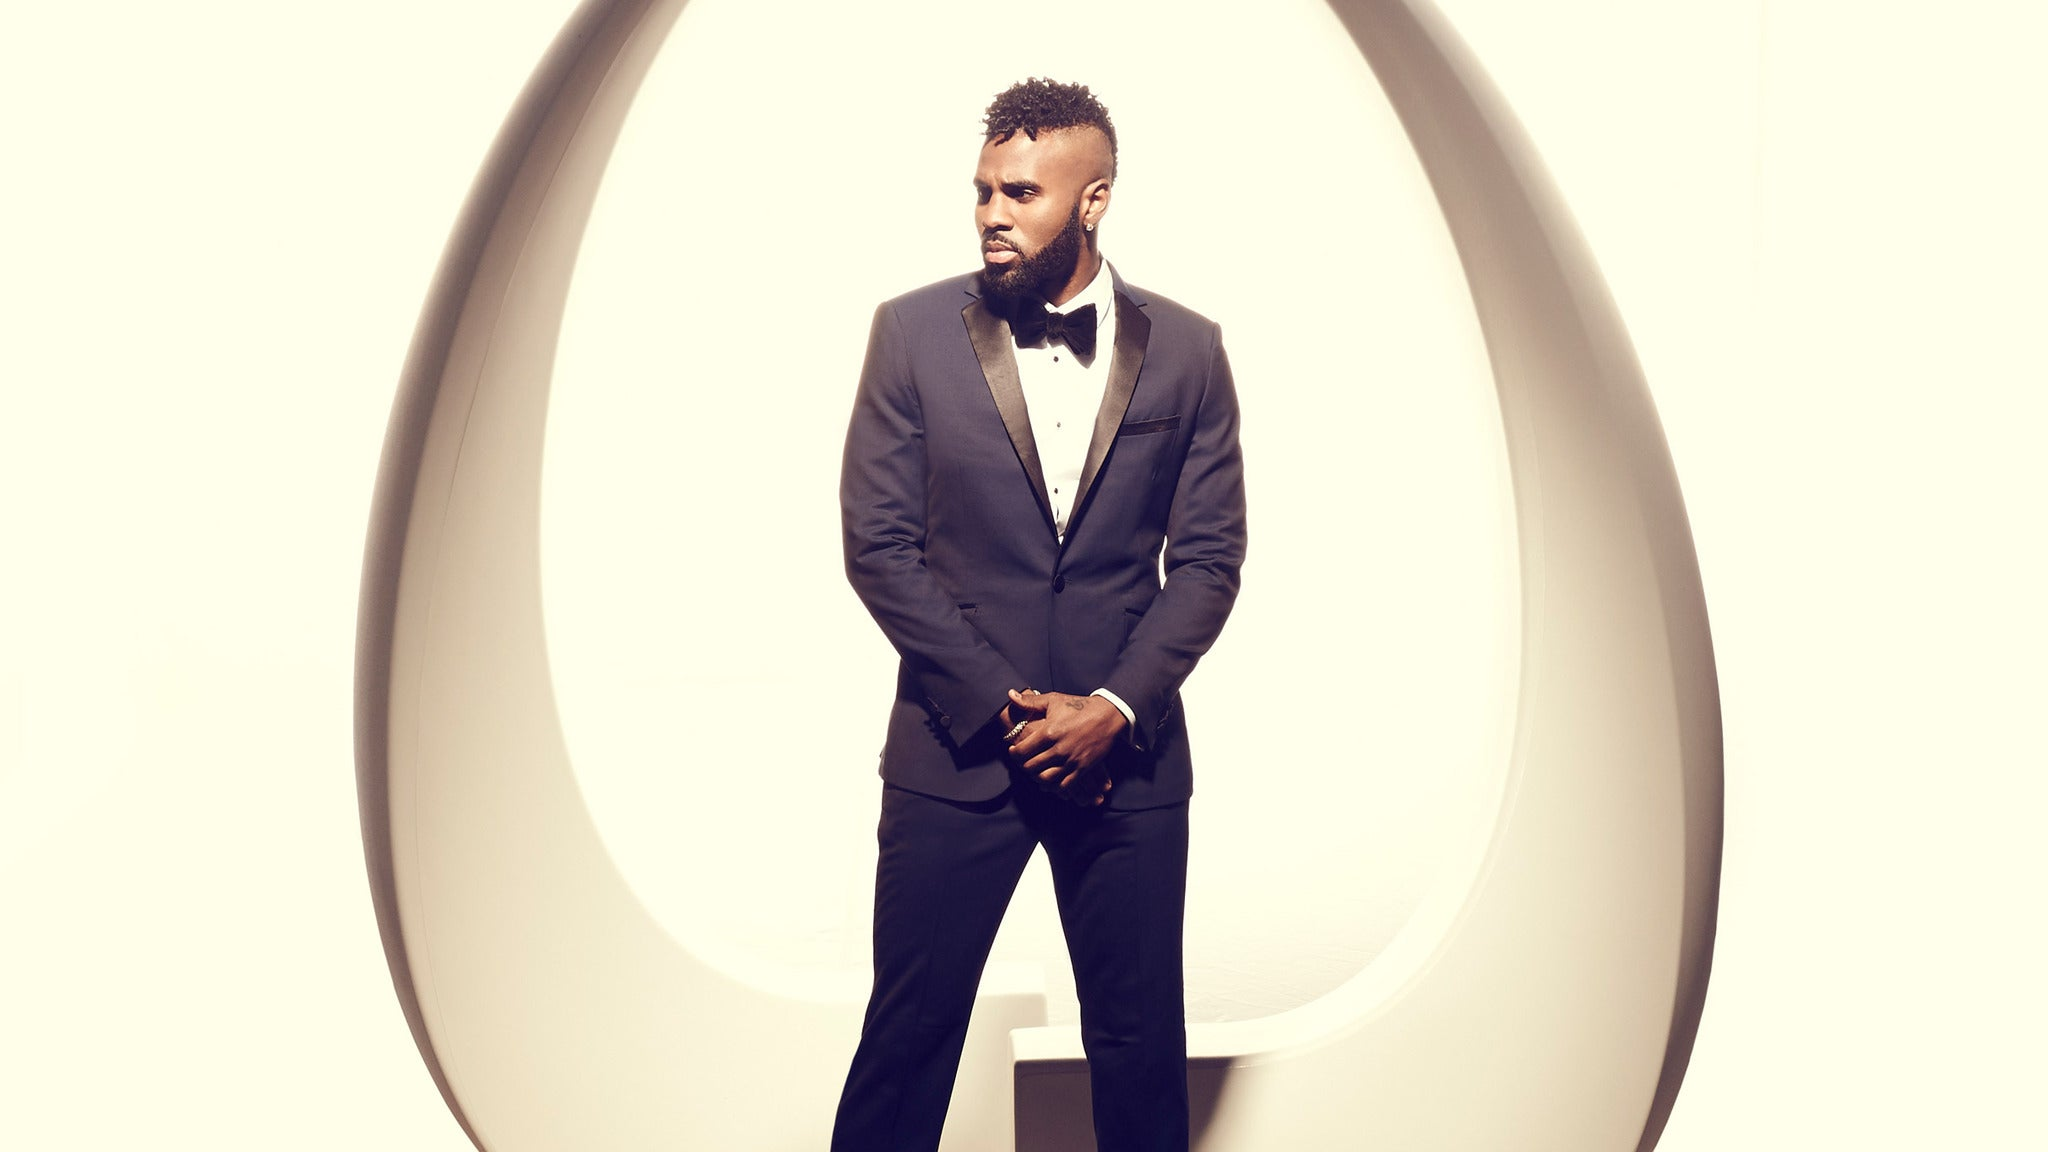 Jason Derulo at RiverEdge Park